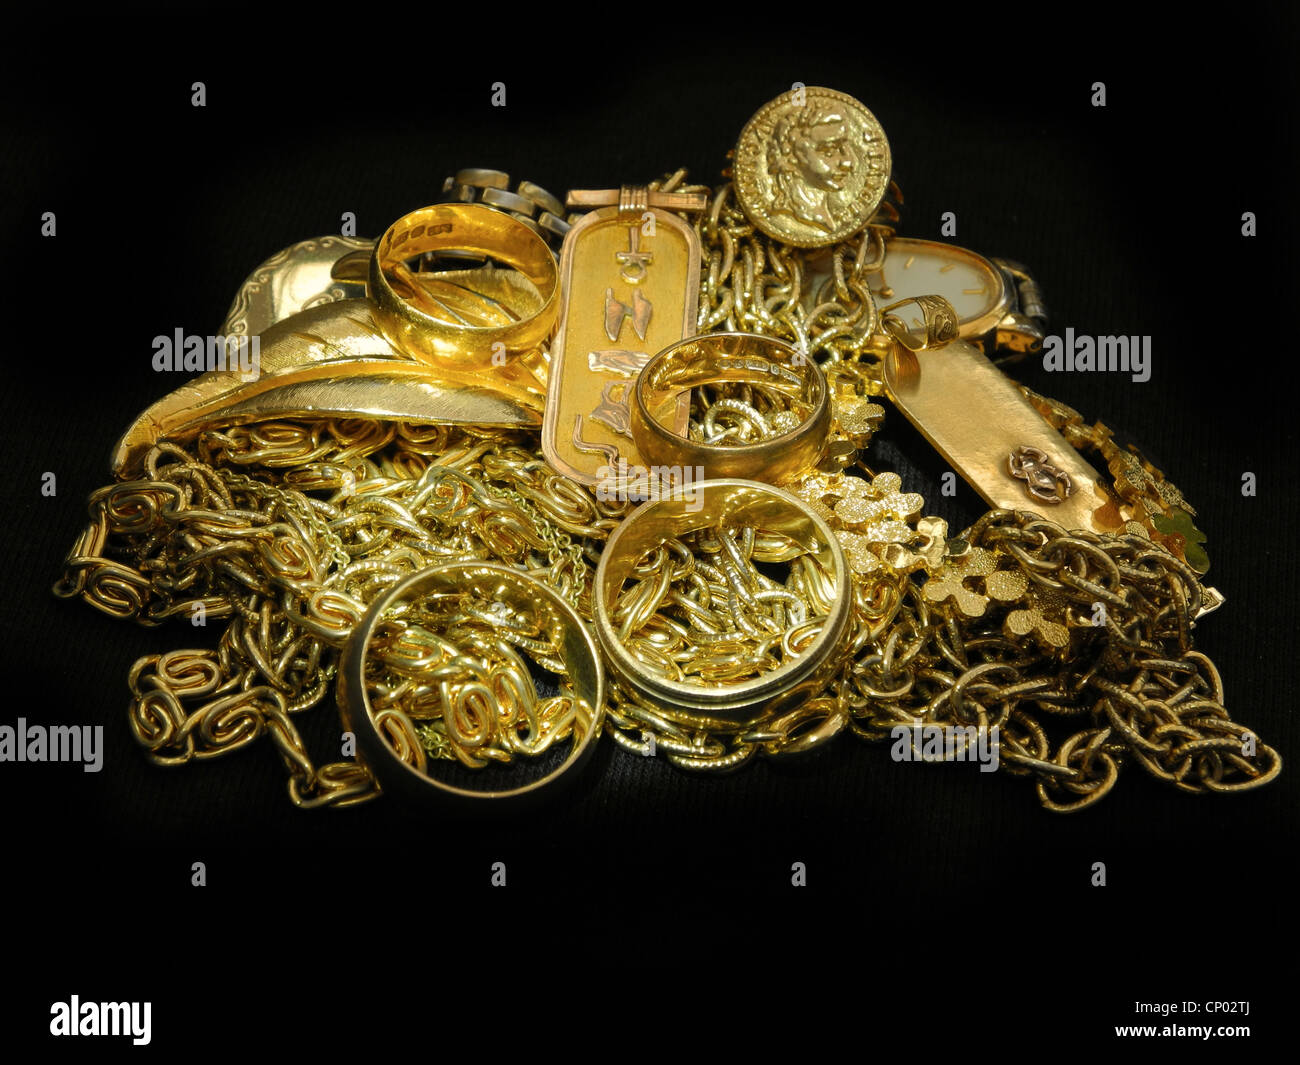 Scrap gold is at an all-time high. - Stock Image